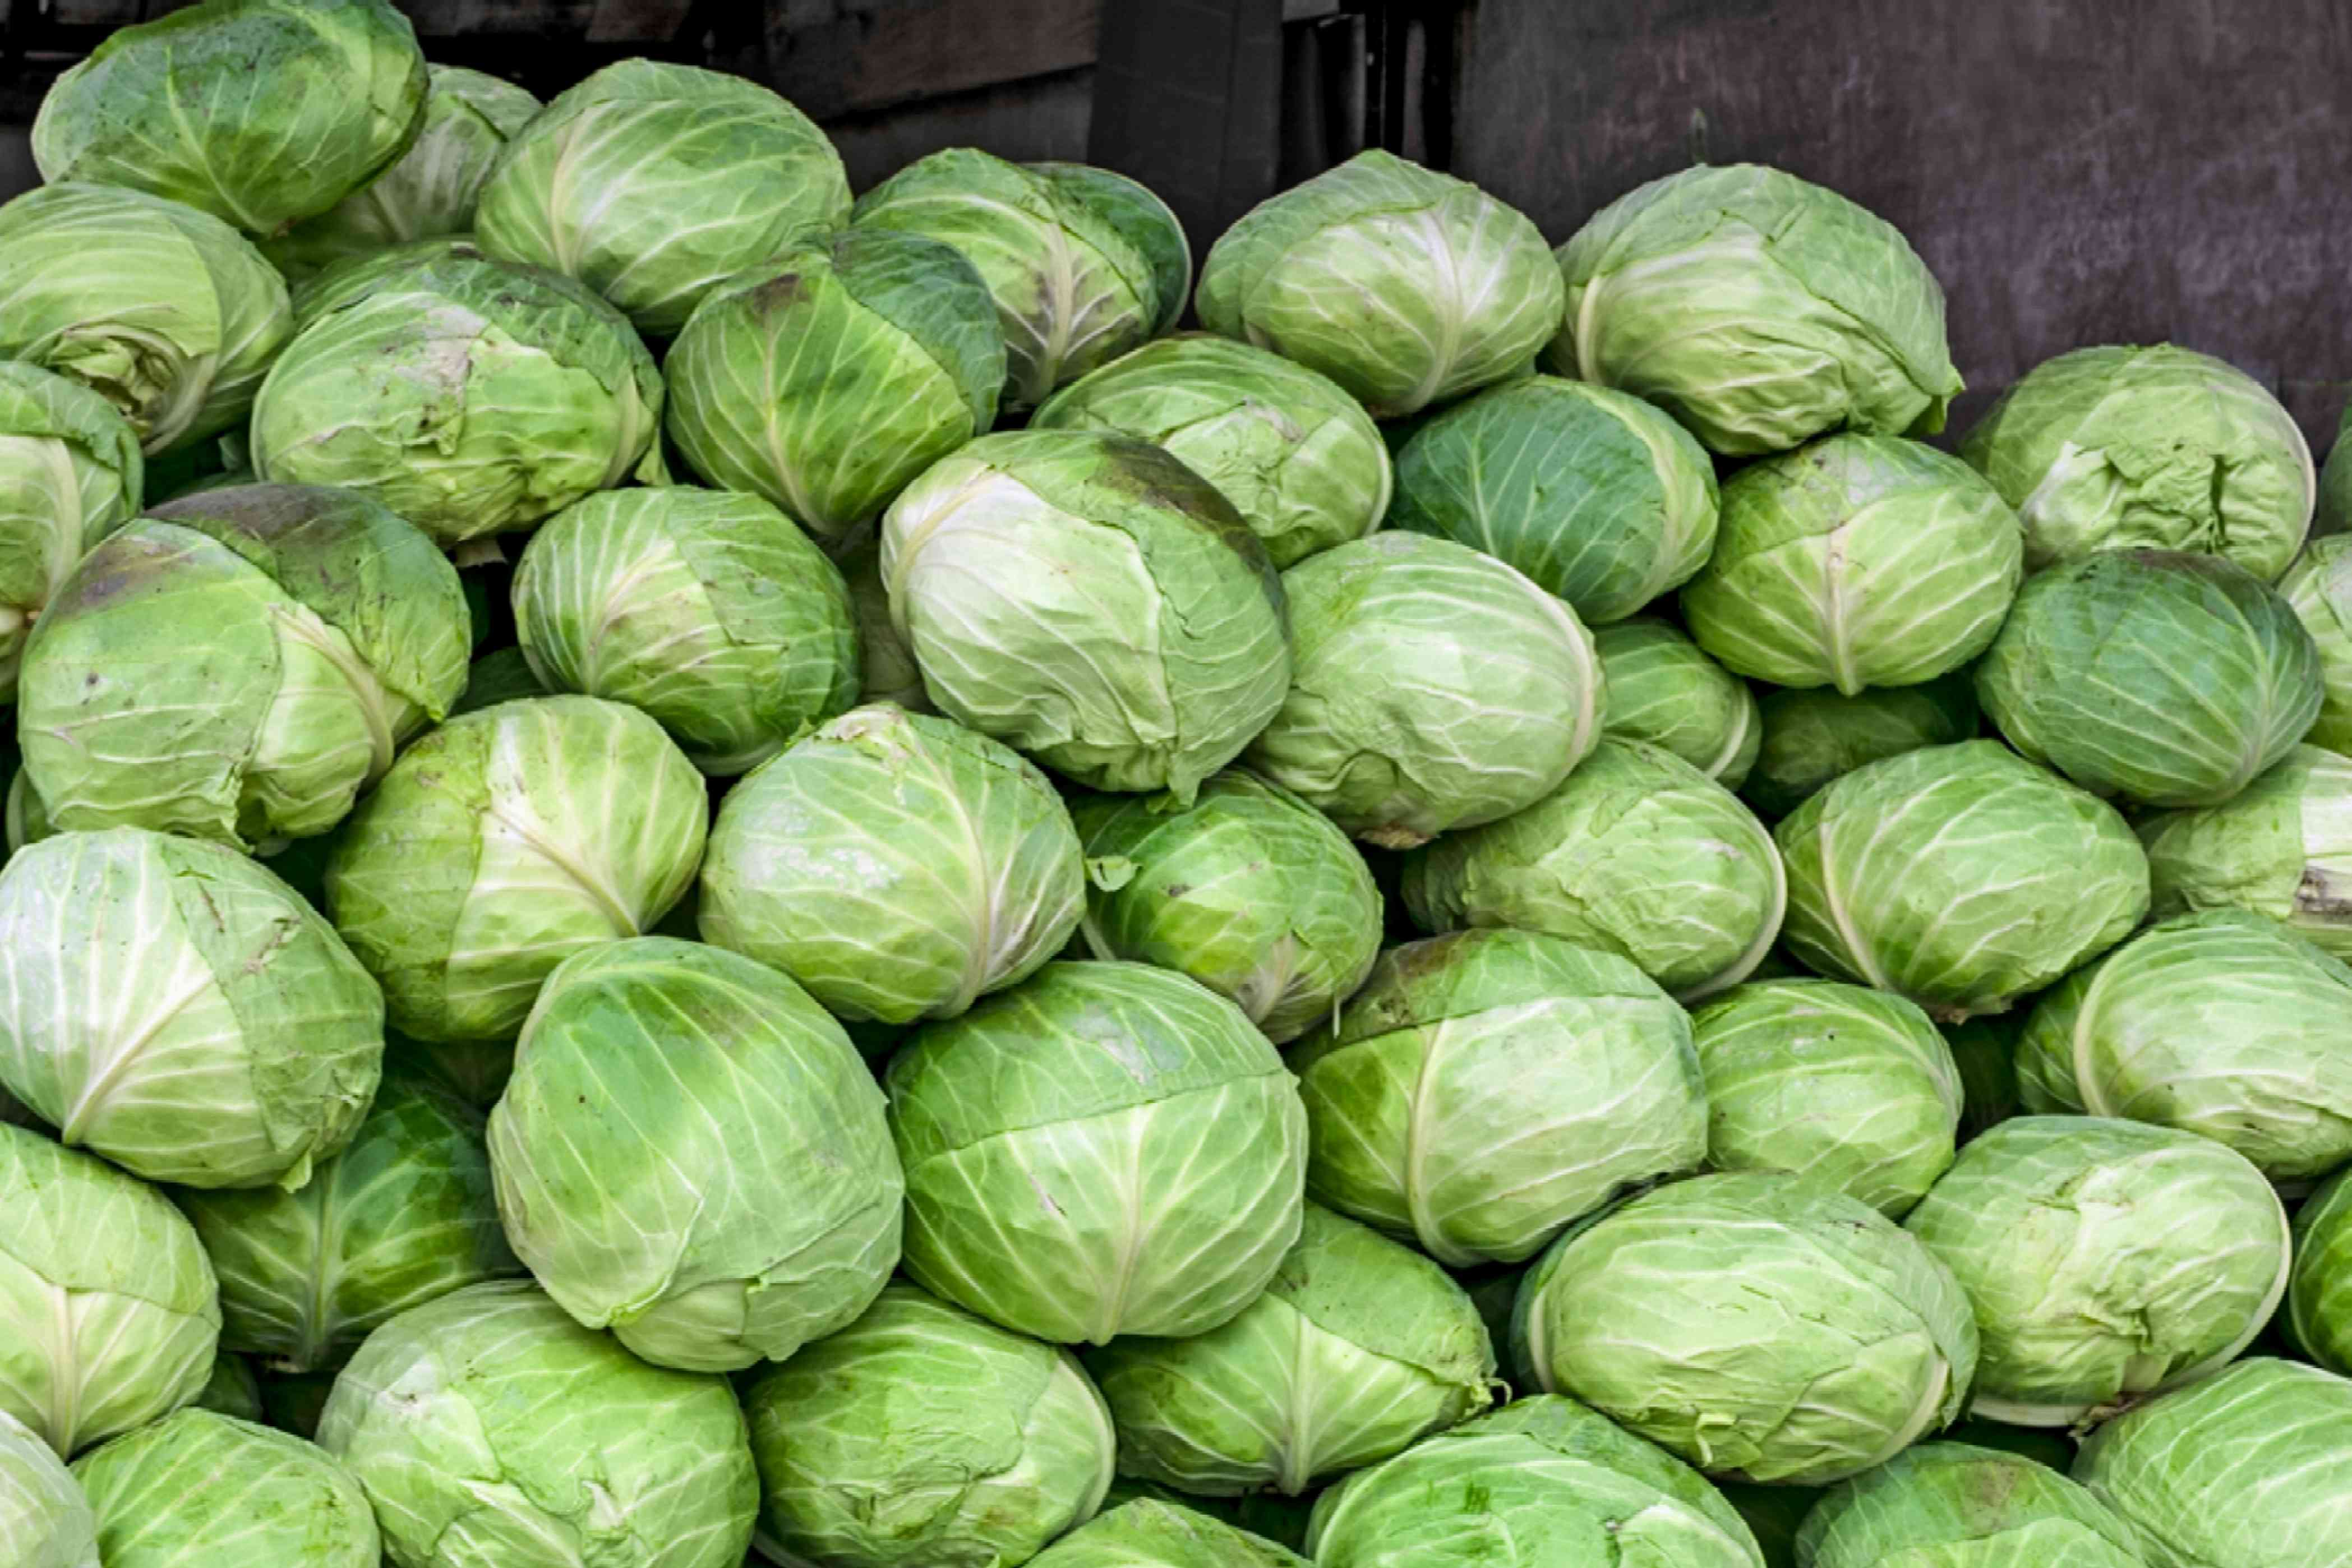 stacks of green cabbage heads freshly harvested and ready for storage